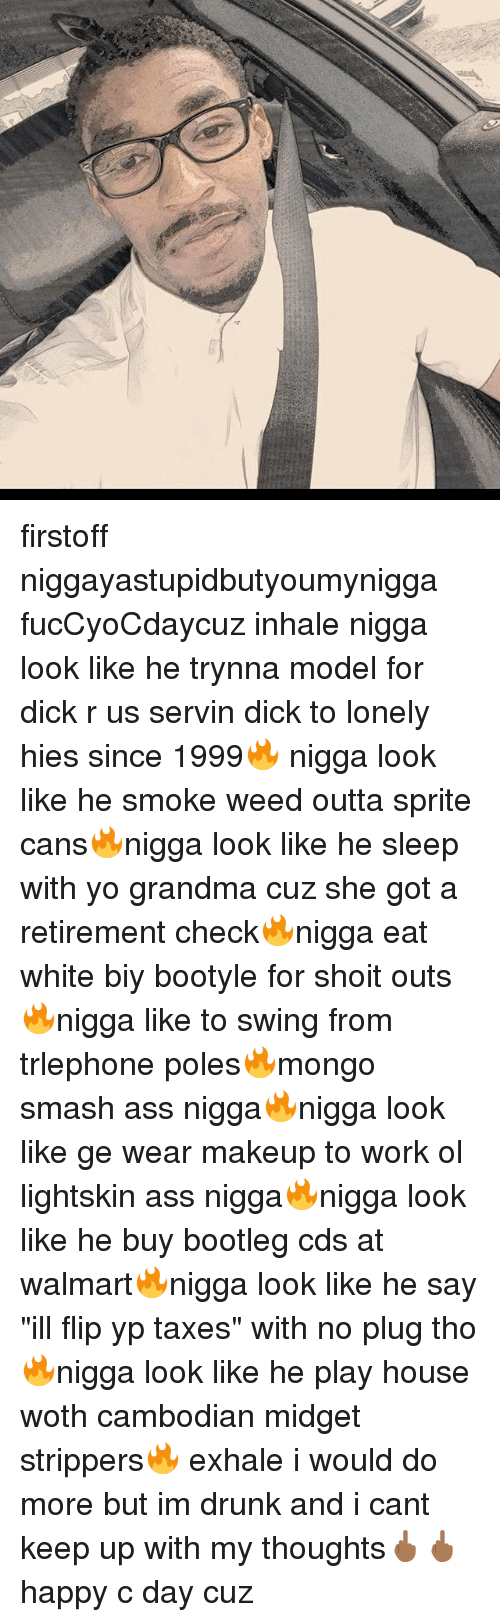 """Ass, Bootleg, and Drunk: firstoff niggayastupidbutyoumynigga fucCyoCdaycuz inhale nigga look like he trynna model for dick r us servin dick to lonely hies since 1999🔥 nigga look like he smoke weed outta sprite cans🔥nigga look like he sleep with yo grandma cuz she got a retirement check🔥nigga eat white biy bootyle for shoit outs🔥nigga like to swing from trlephone poles🔥mongo smash ass nigga🔥nigga look like ge wear makeup to work ol lightskin ass nigga🔥nigga look like he buy bootleg cds at walmart🔥nigga look like he say """"ill flip yp taxes"""" with no plug tho🔥nigga look like he play house woth cambodian midget strippers🔥 exhale i would do more but im drunk and i cant keep up with my thoughts🖕🏾🖕🏾 happy c day cuz"""